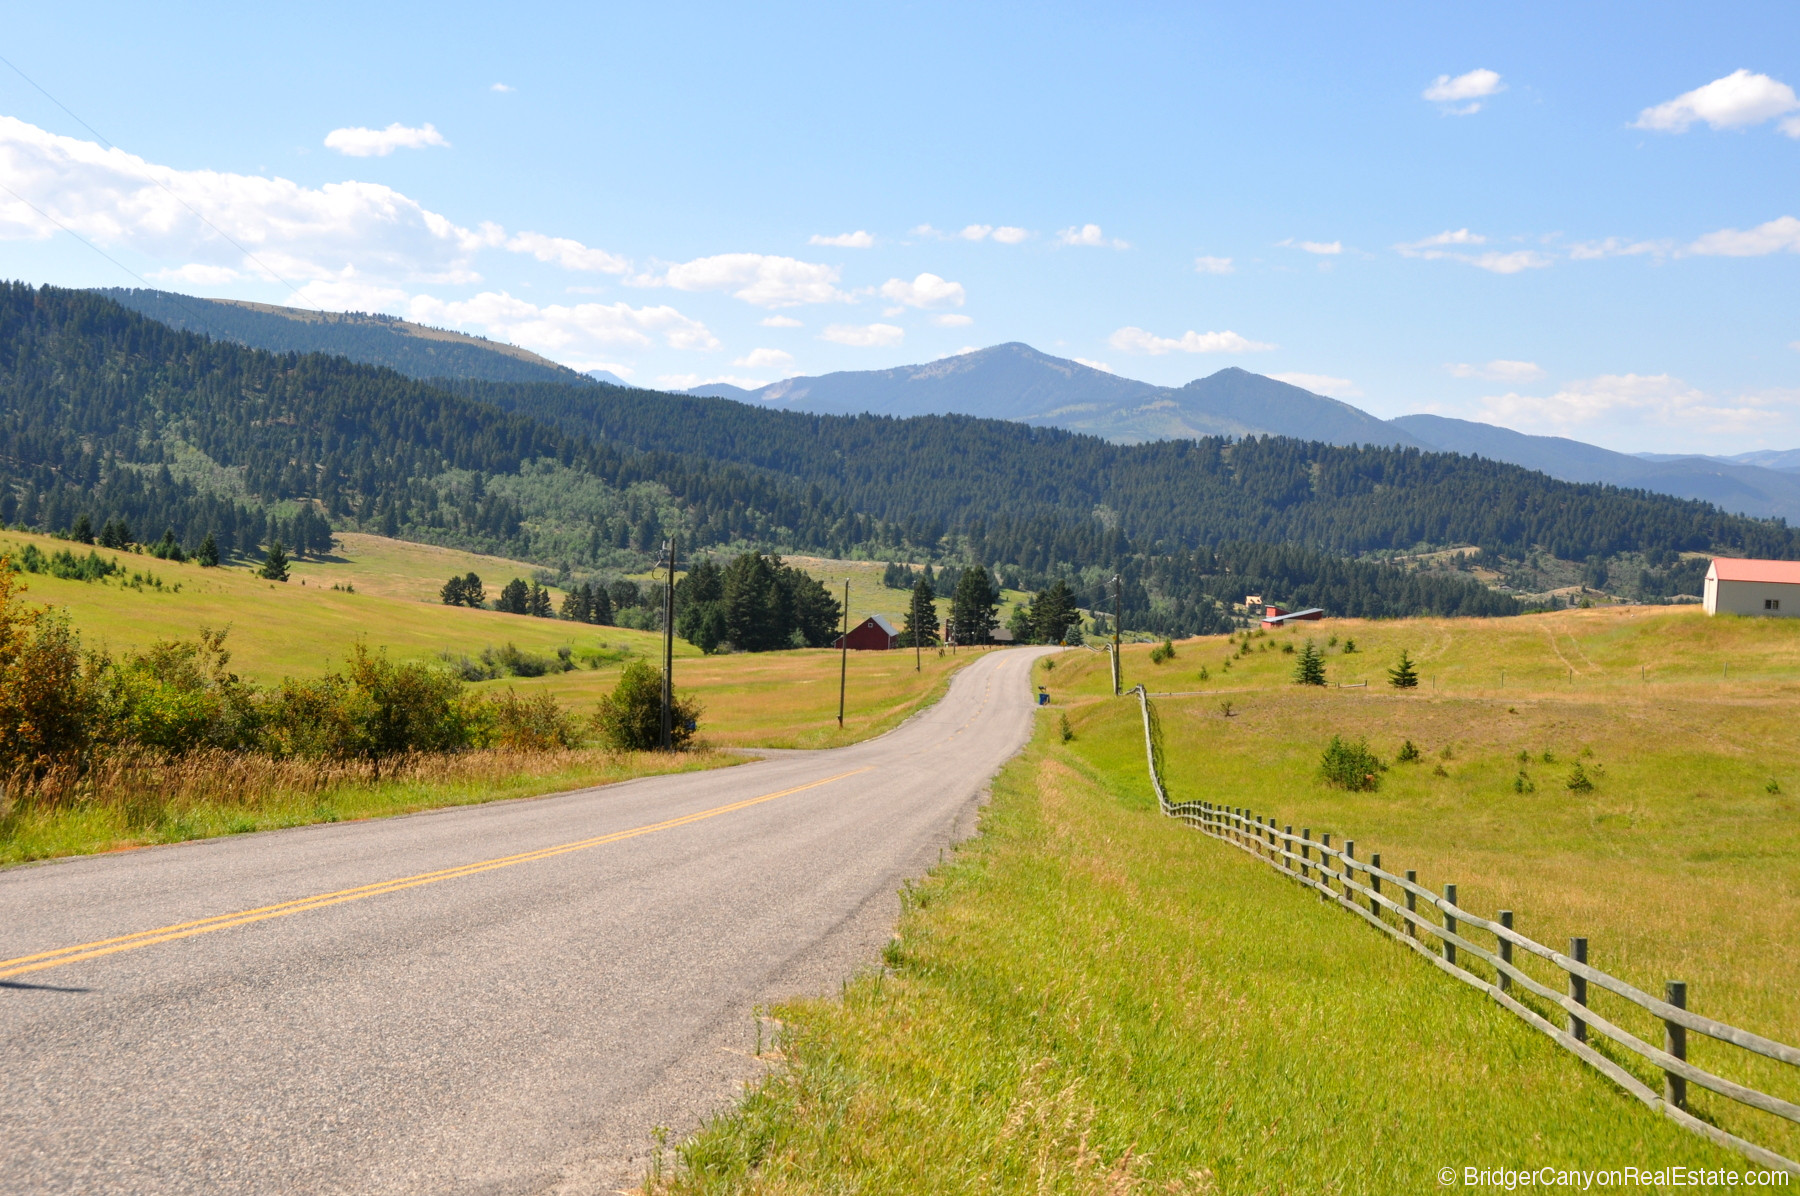 Kelly canyon bozeman bridger canyon real estate for Cost to build a house in bozeman mt